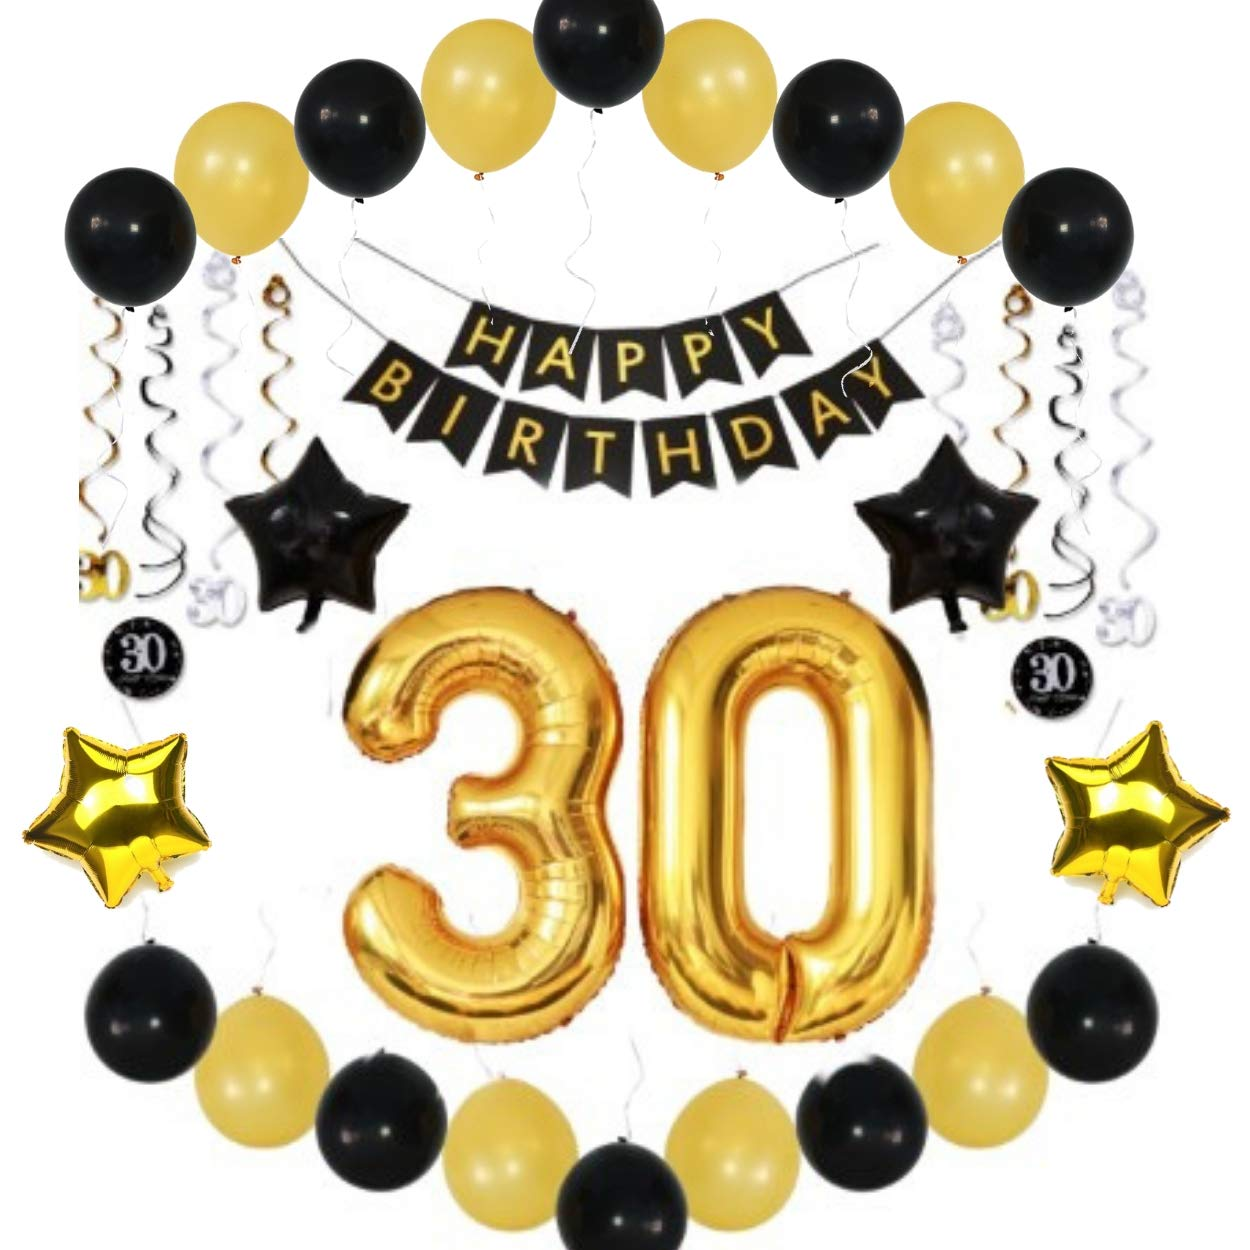 Amazon 30th Birthday Party Decorations Kit For Him Her Banner Balloons Sparkling Hanging Swirls